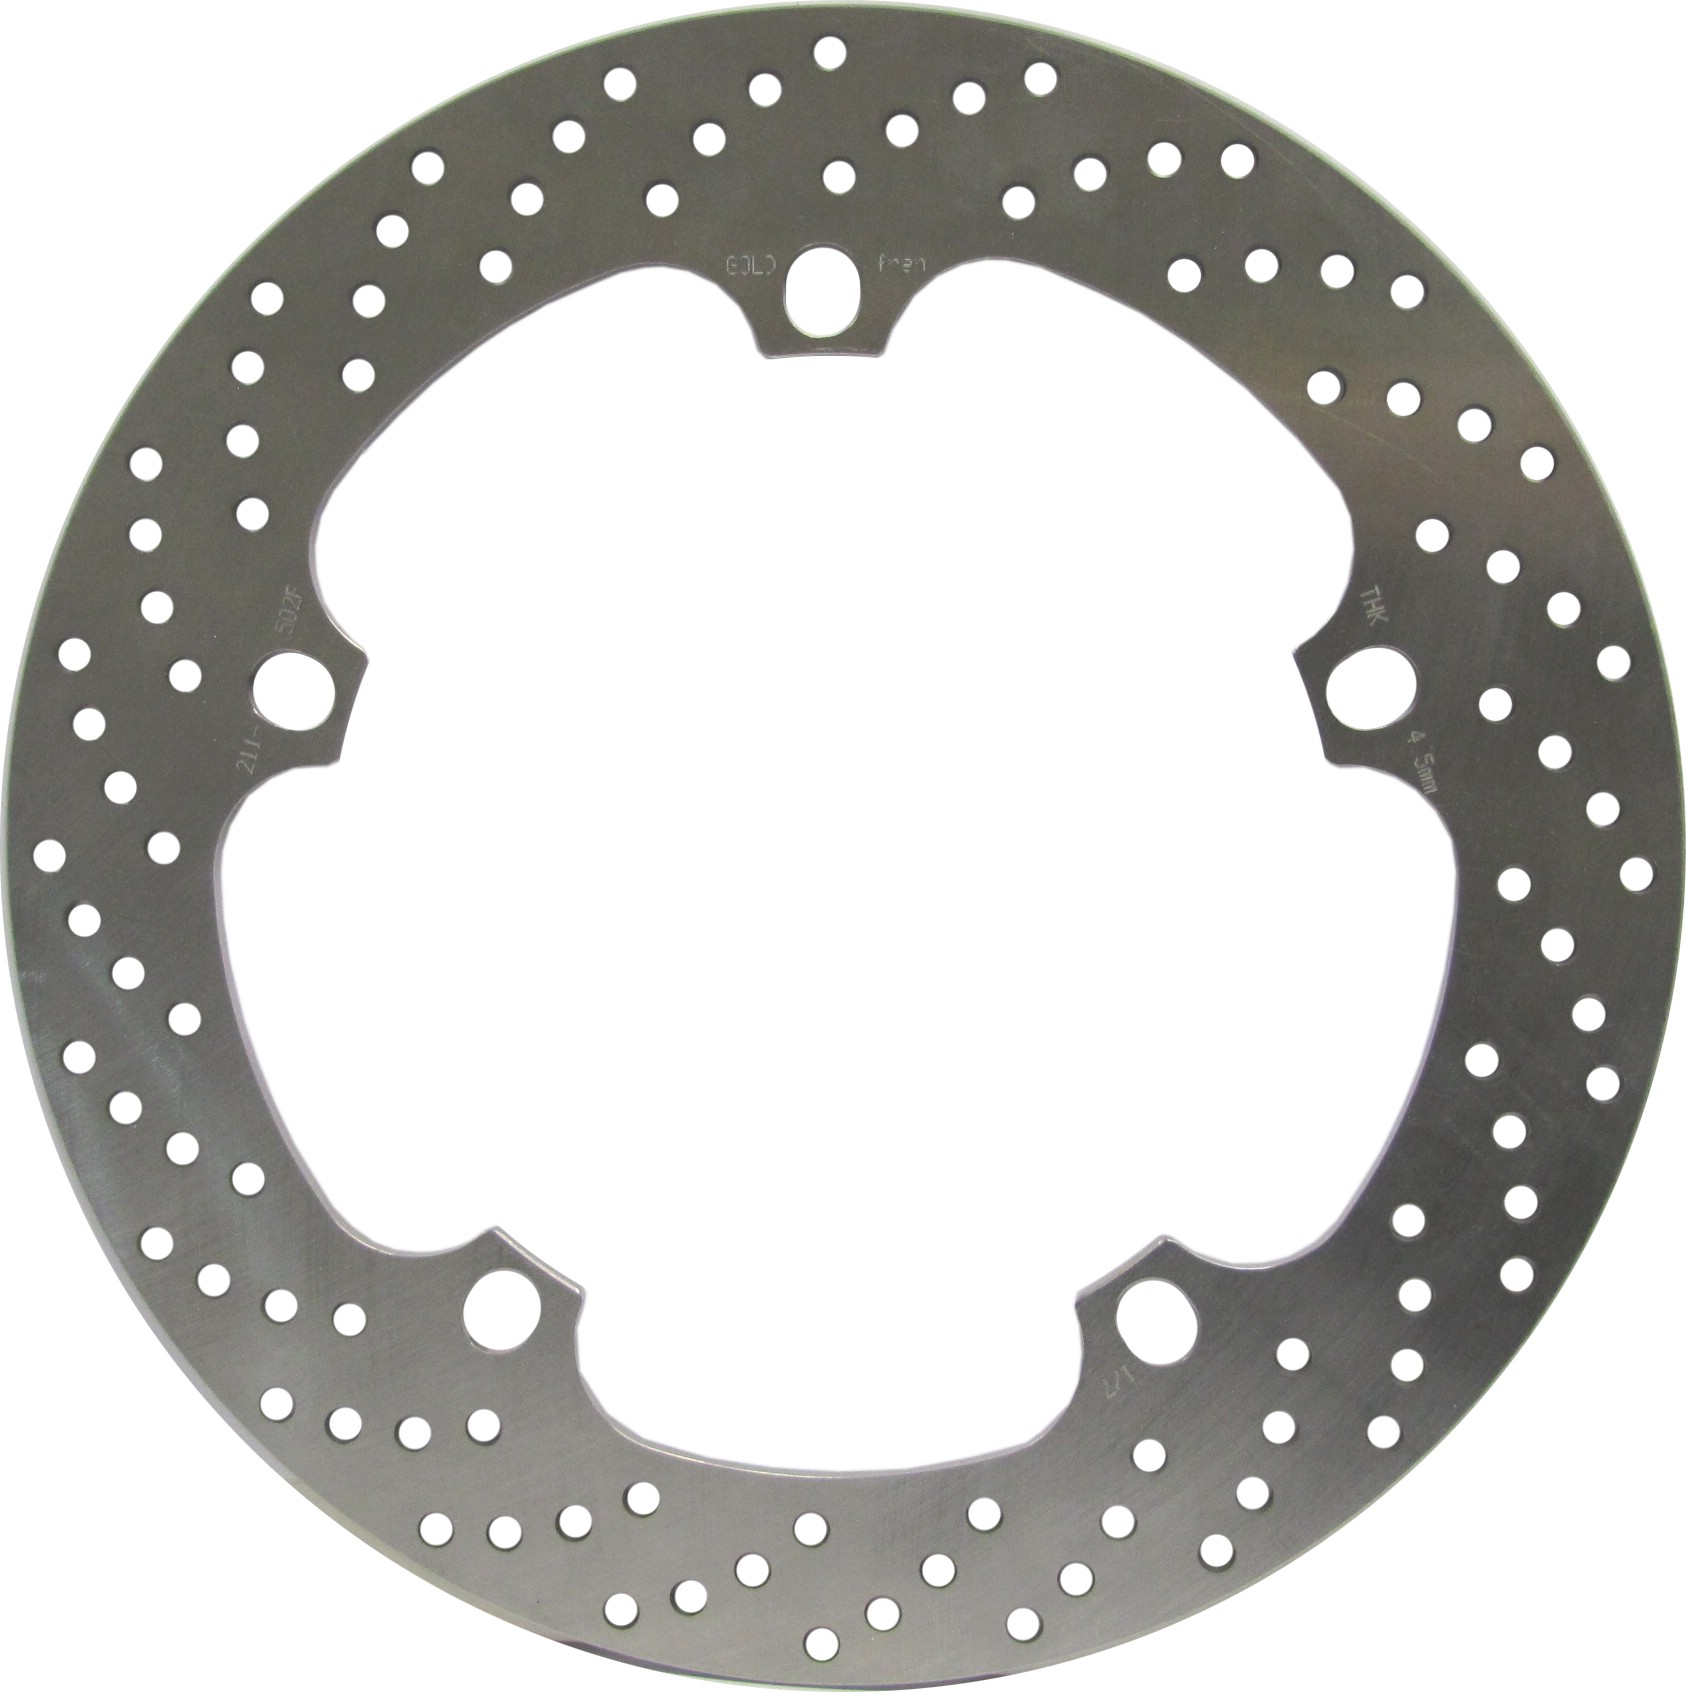 BMW-R-850-RT-Europe-1996-2001-Brake-Disc-Front-Right-Each